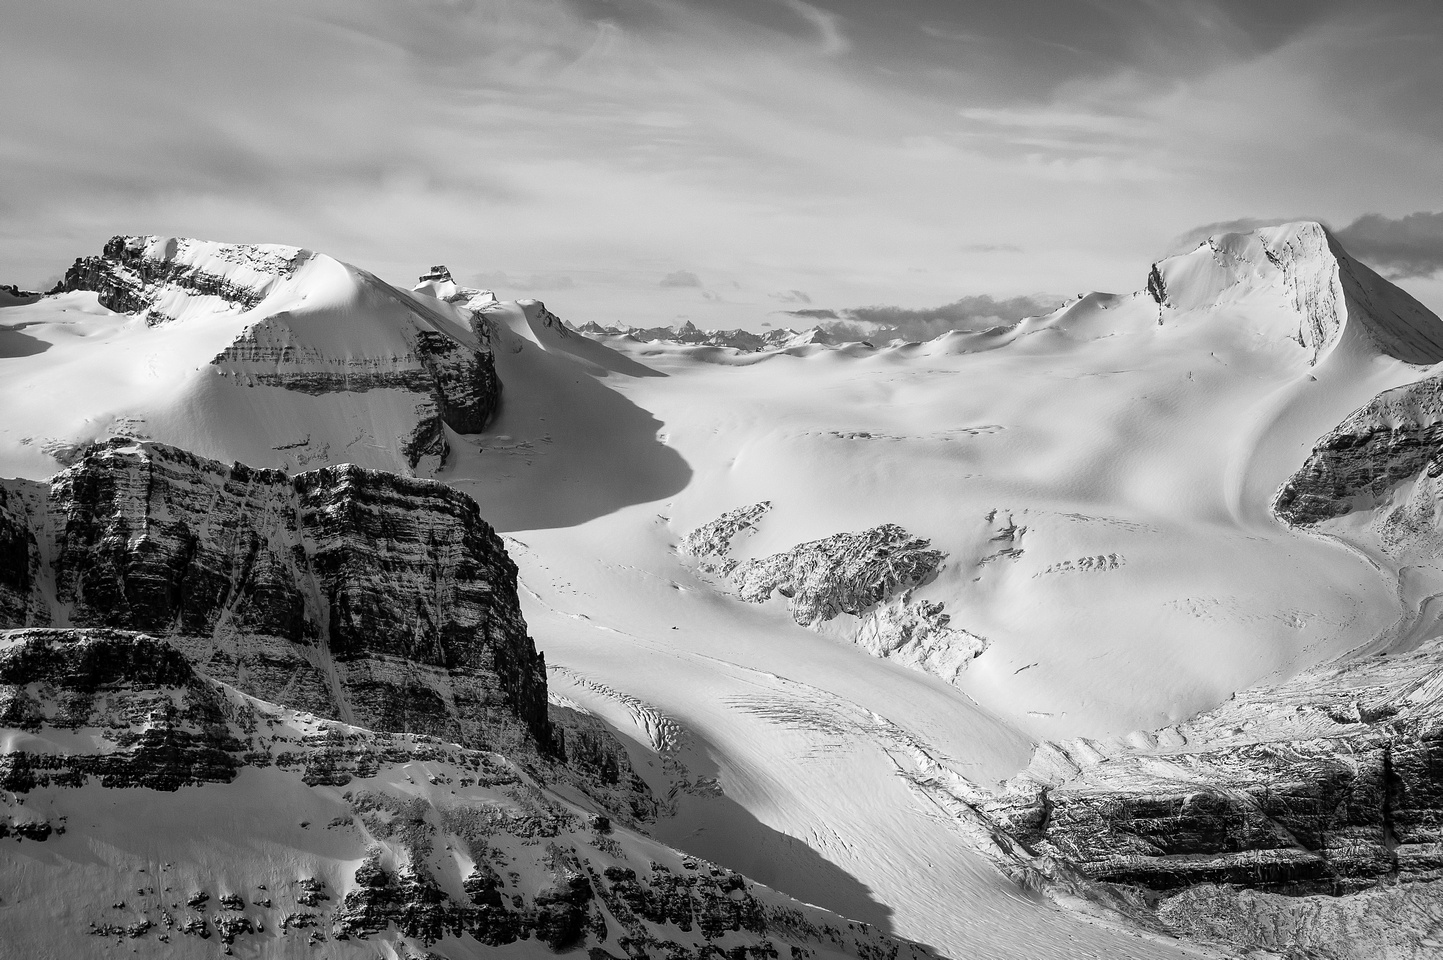 Looking over the Peyto Glacier. Baker at right, Habel at left.